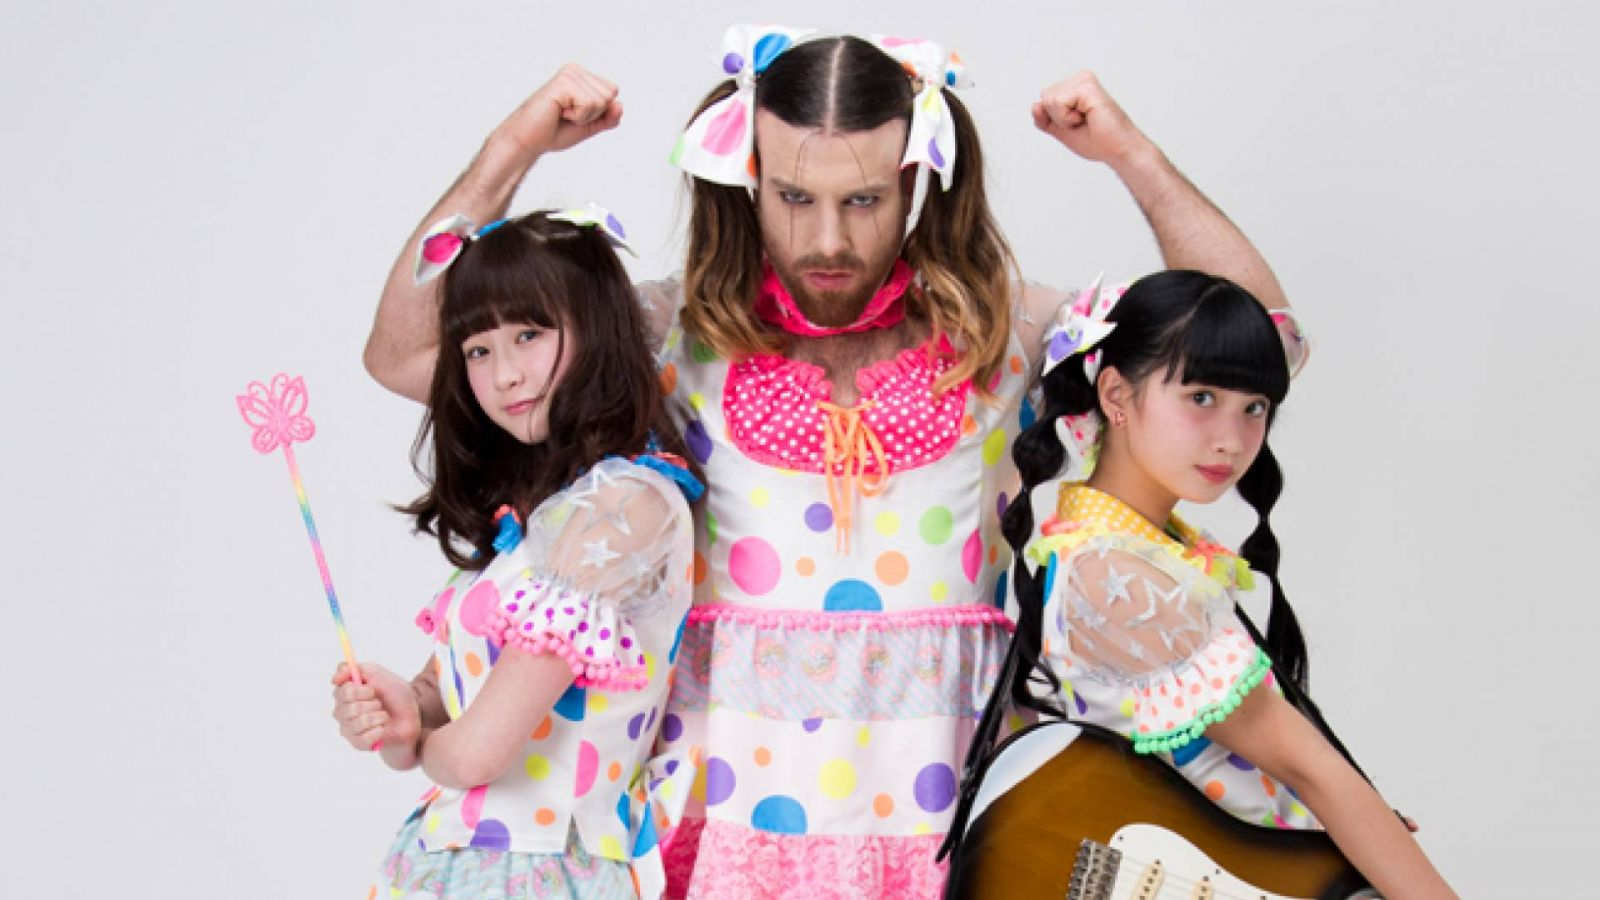 LADYBABY © 2015 clearstone Co., Ltd. All rights reserved.